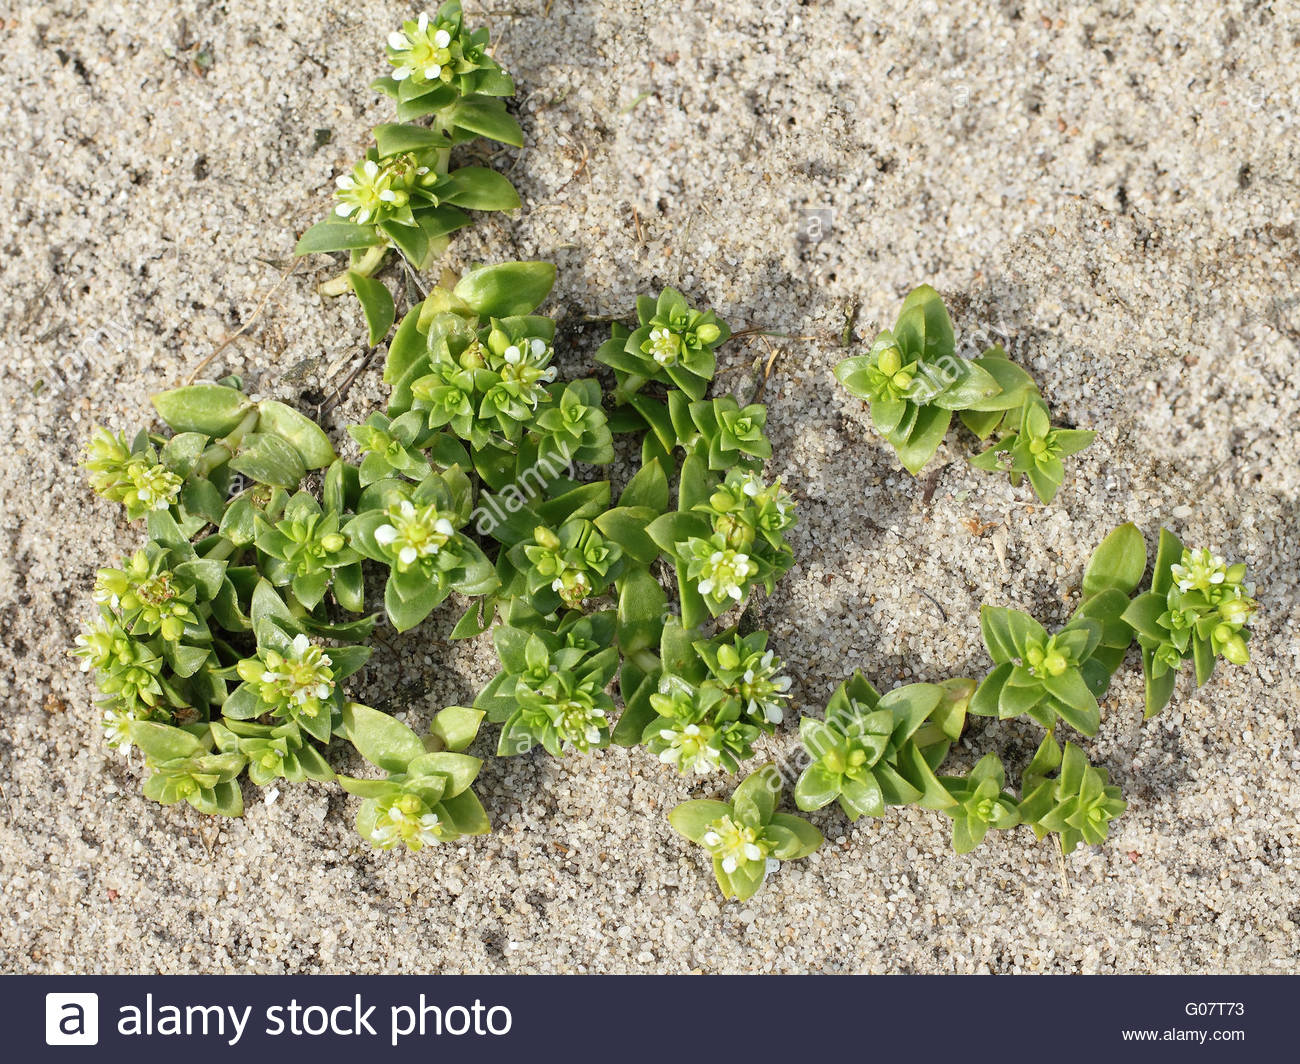 Blossoms of Sea Sandwort on the beach, Honckenya - Stock Image